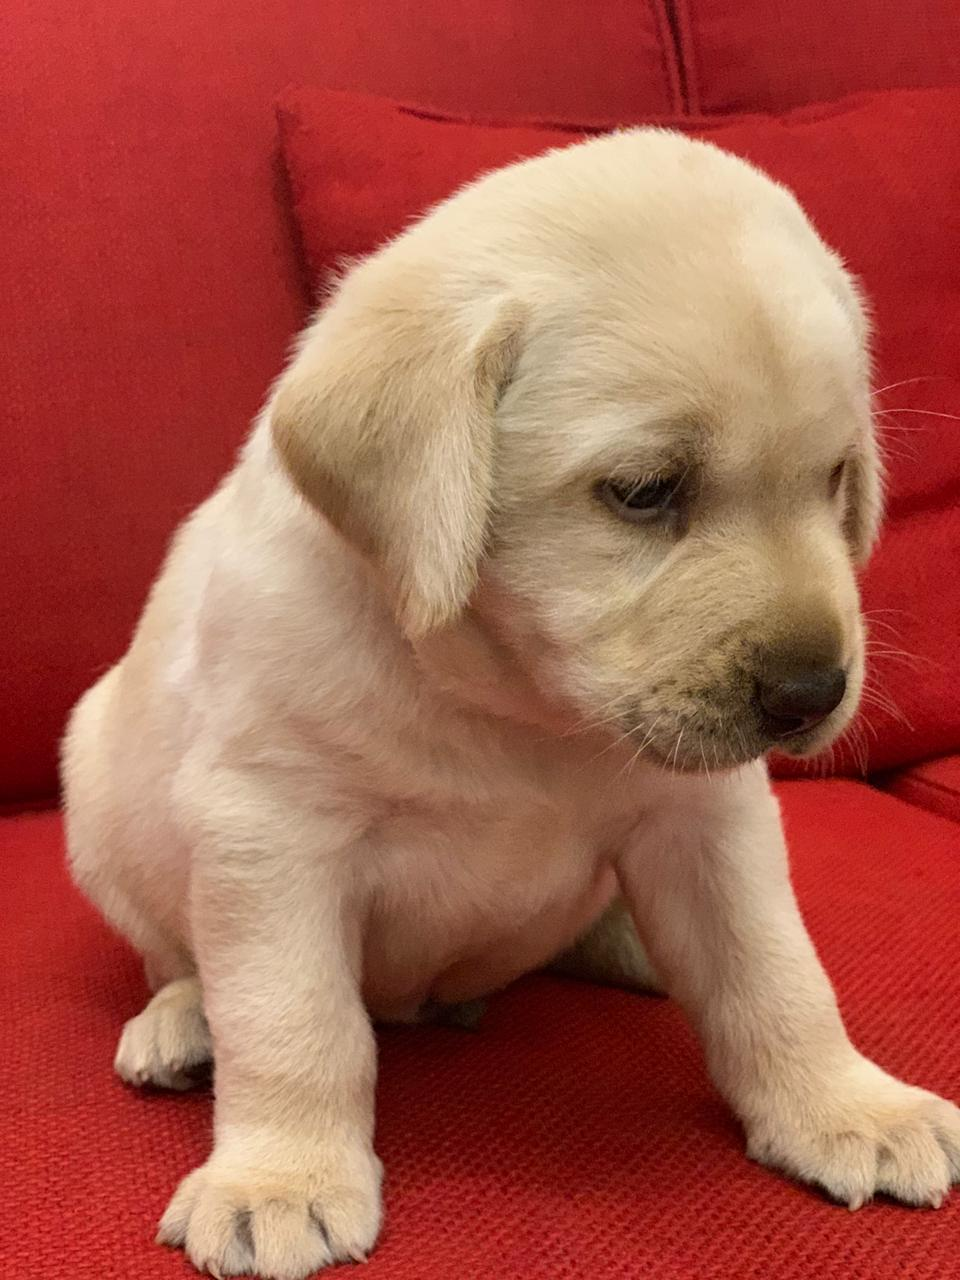 Labrador Female Puppy For Sale in Lahore - Dog - Buy and Sell Pets in Lahore